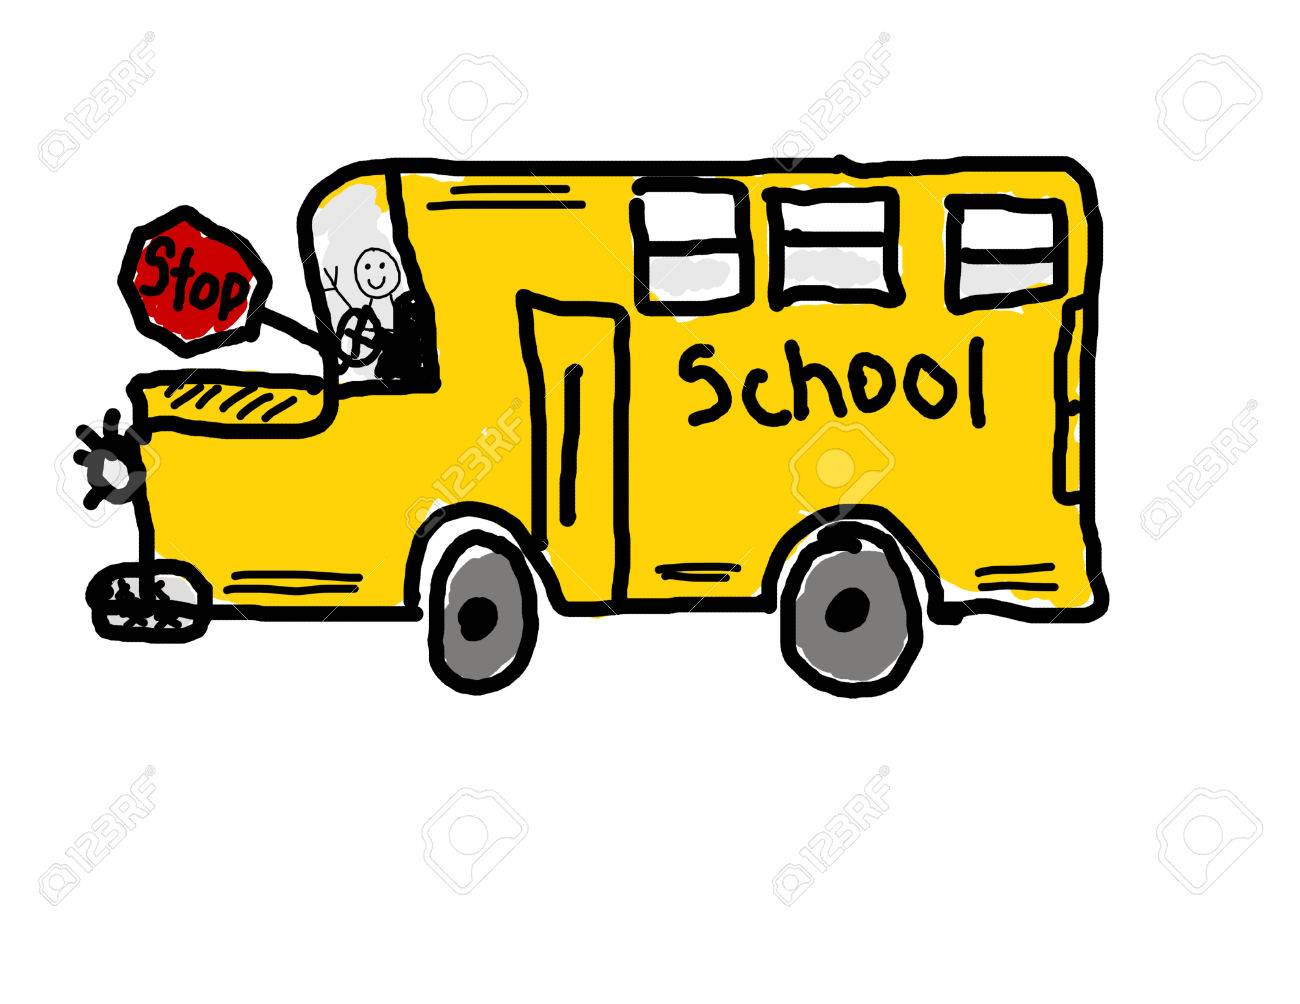 school buses drawing at getdrawings com free for personal use rh getdrawings com free animated school bus clipart free school bus clip art black and white